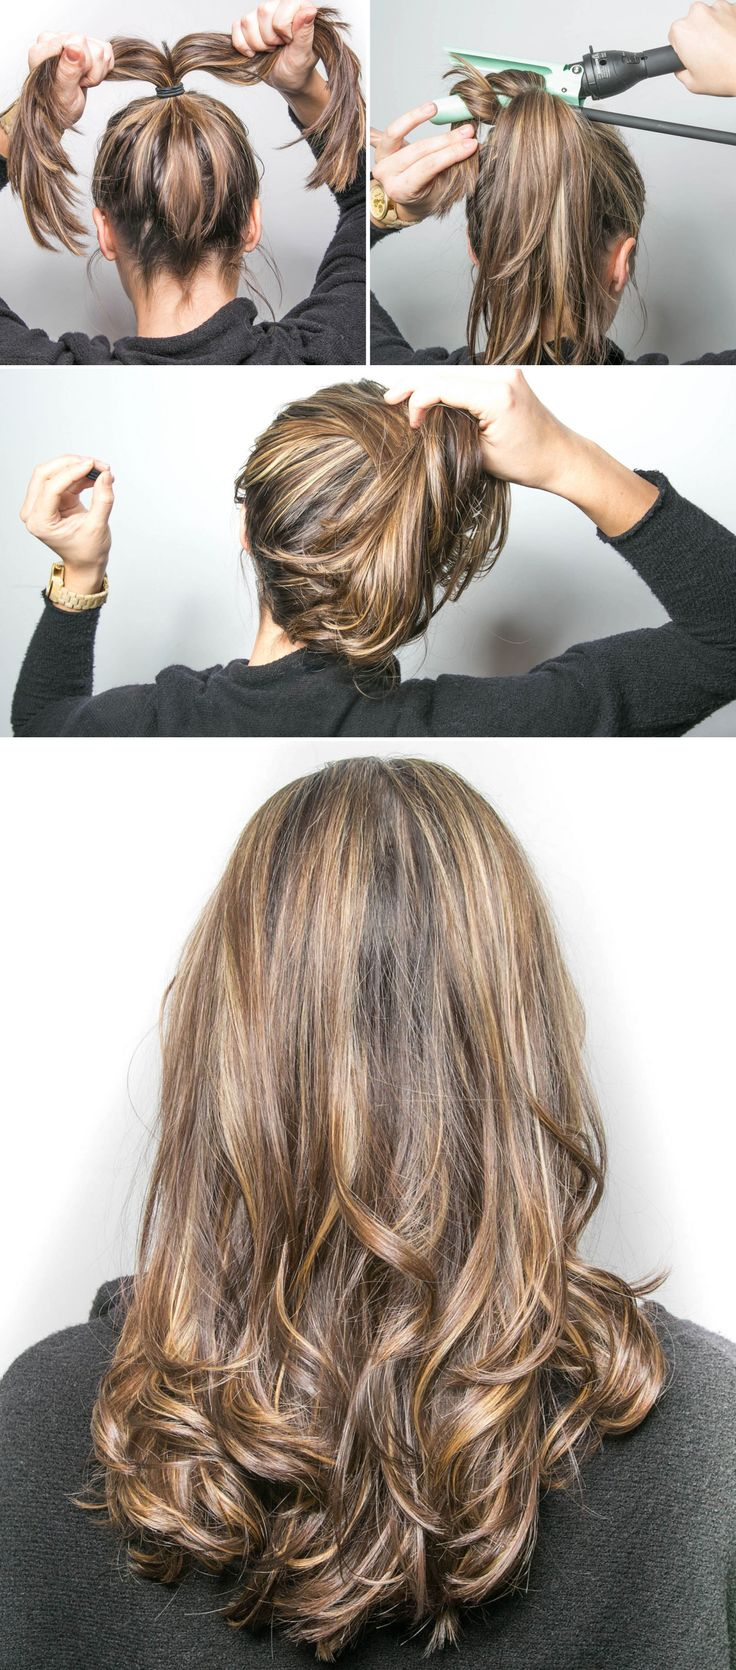 18 lazy girl hair and makeup hacks every woman should know: